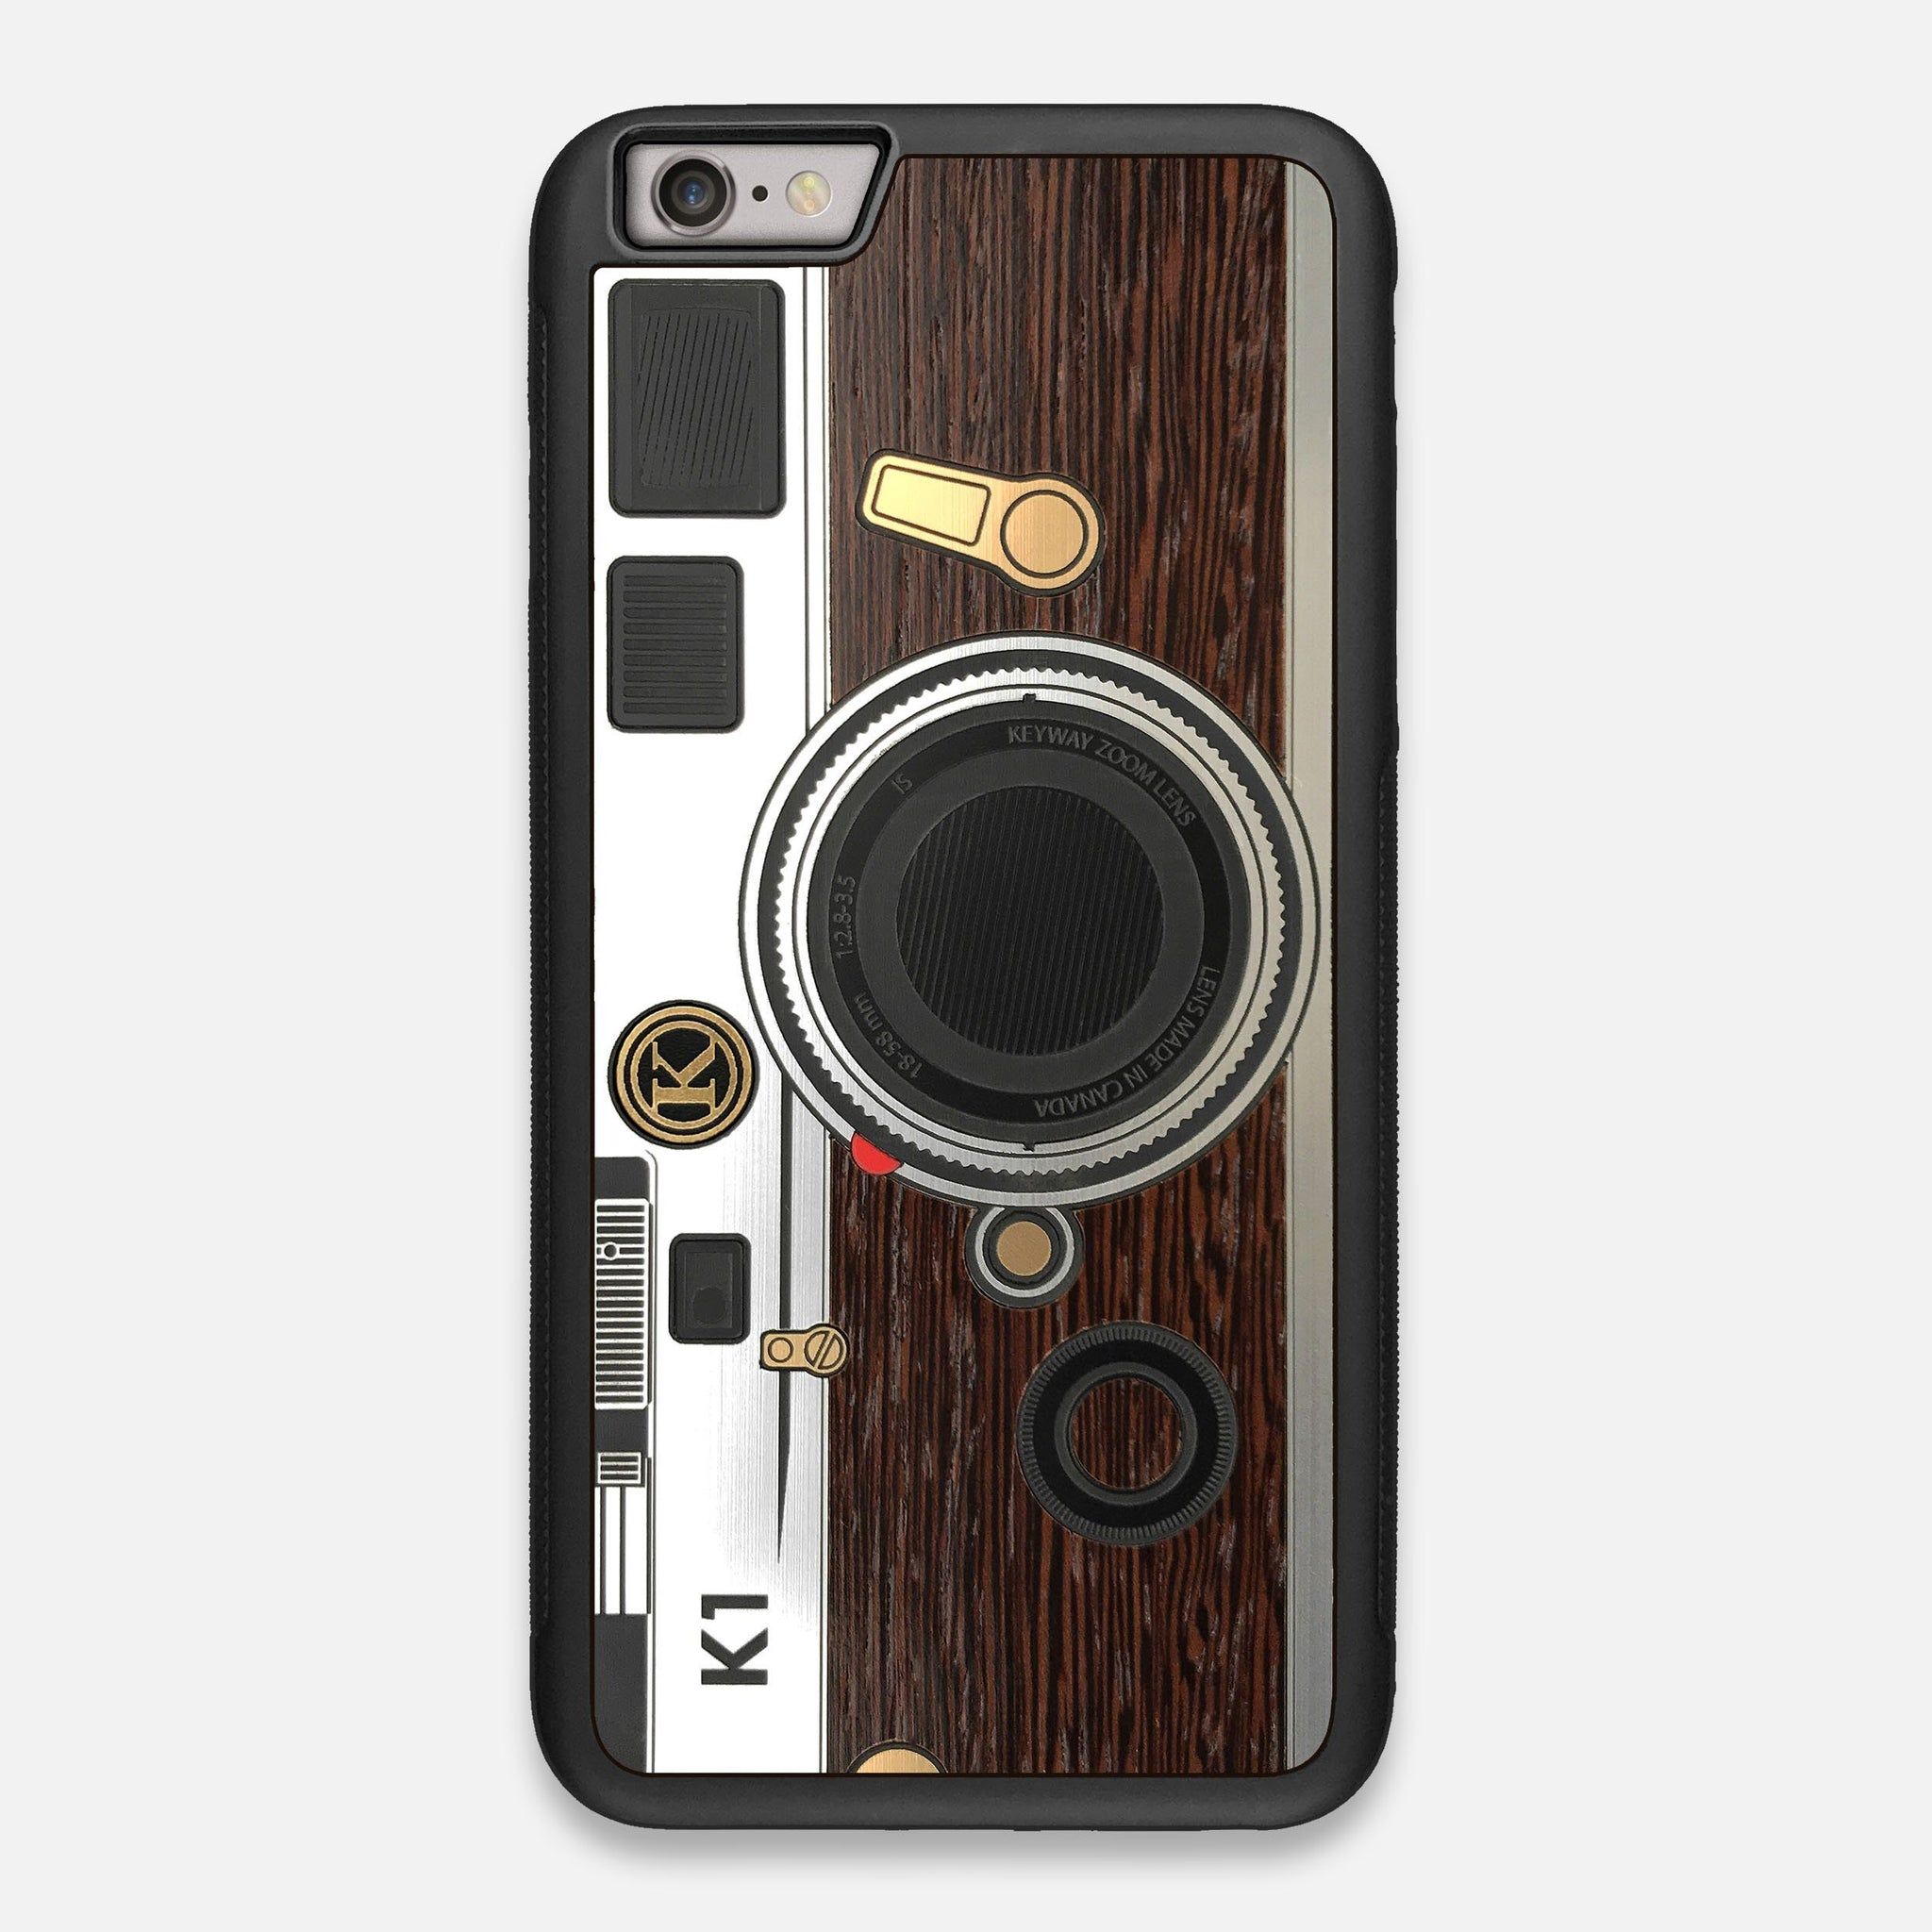 Front view of the classic Camera, silver metallic and wood iPhone 6 Plus Case by Keyway Designs